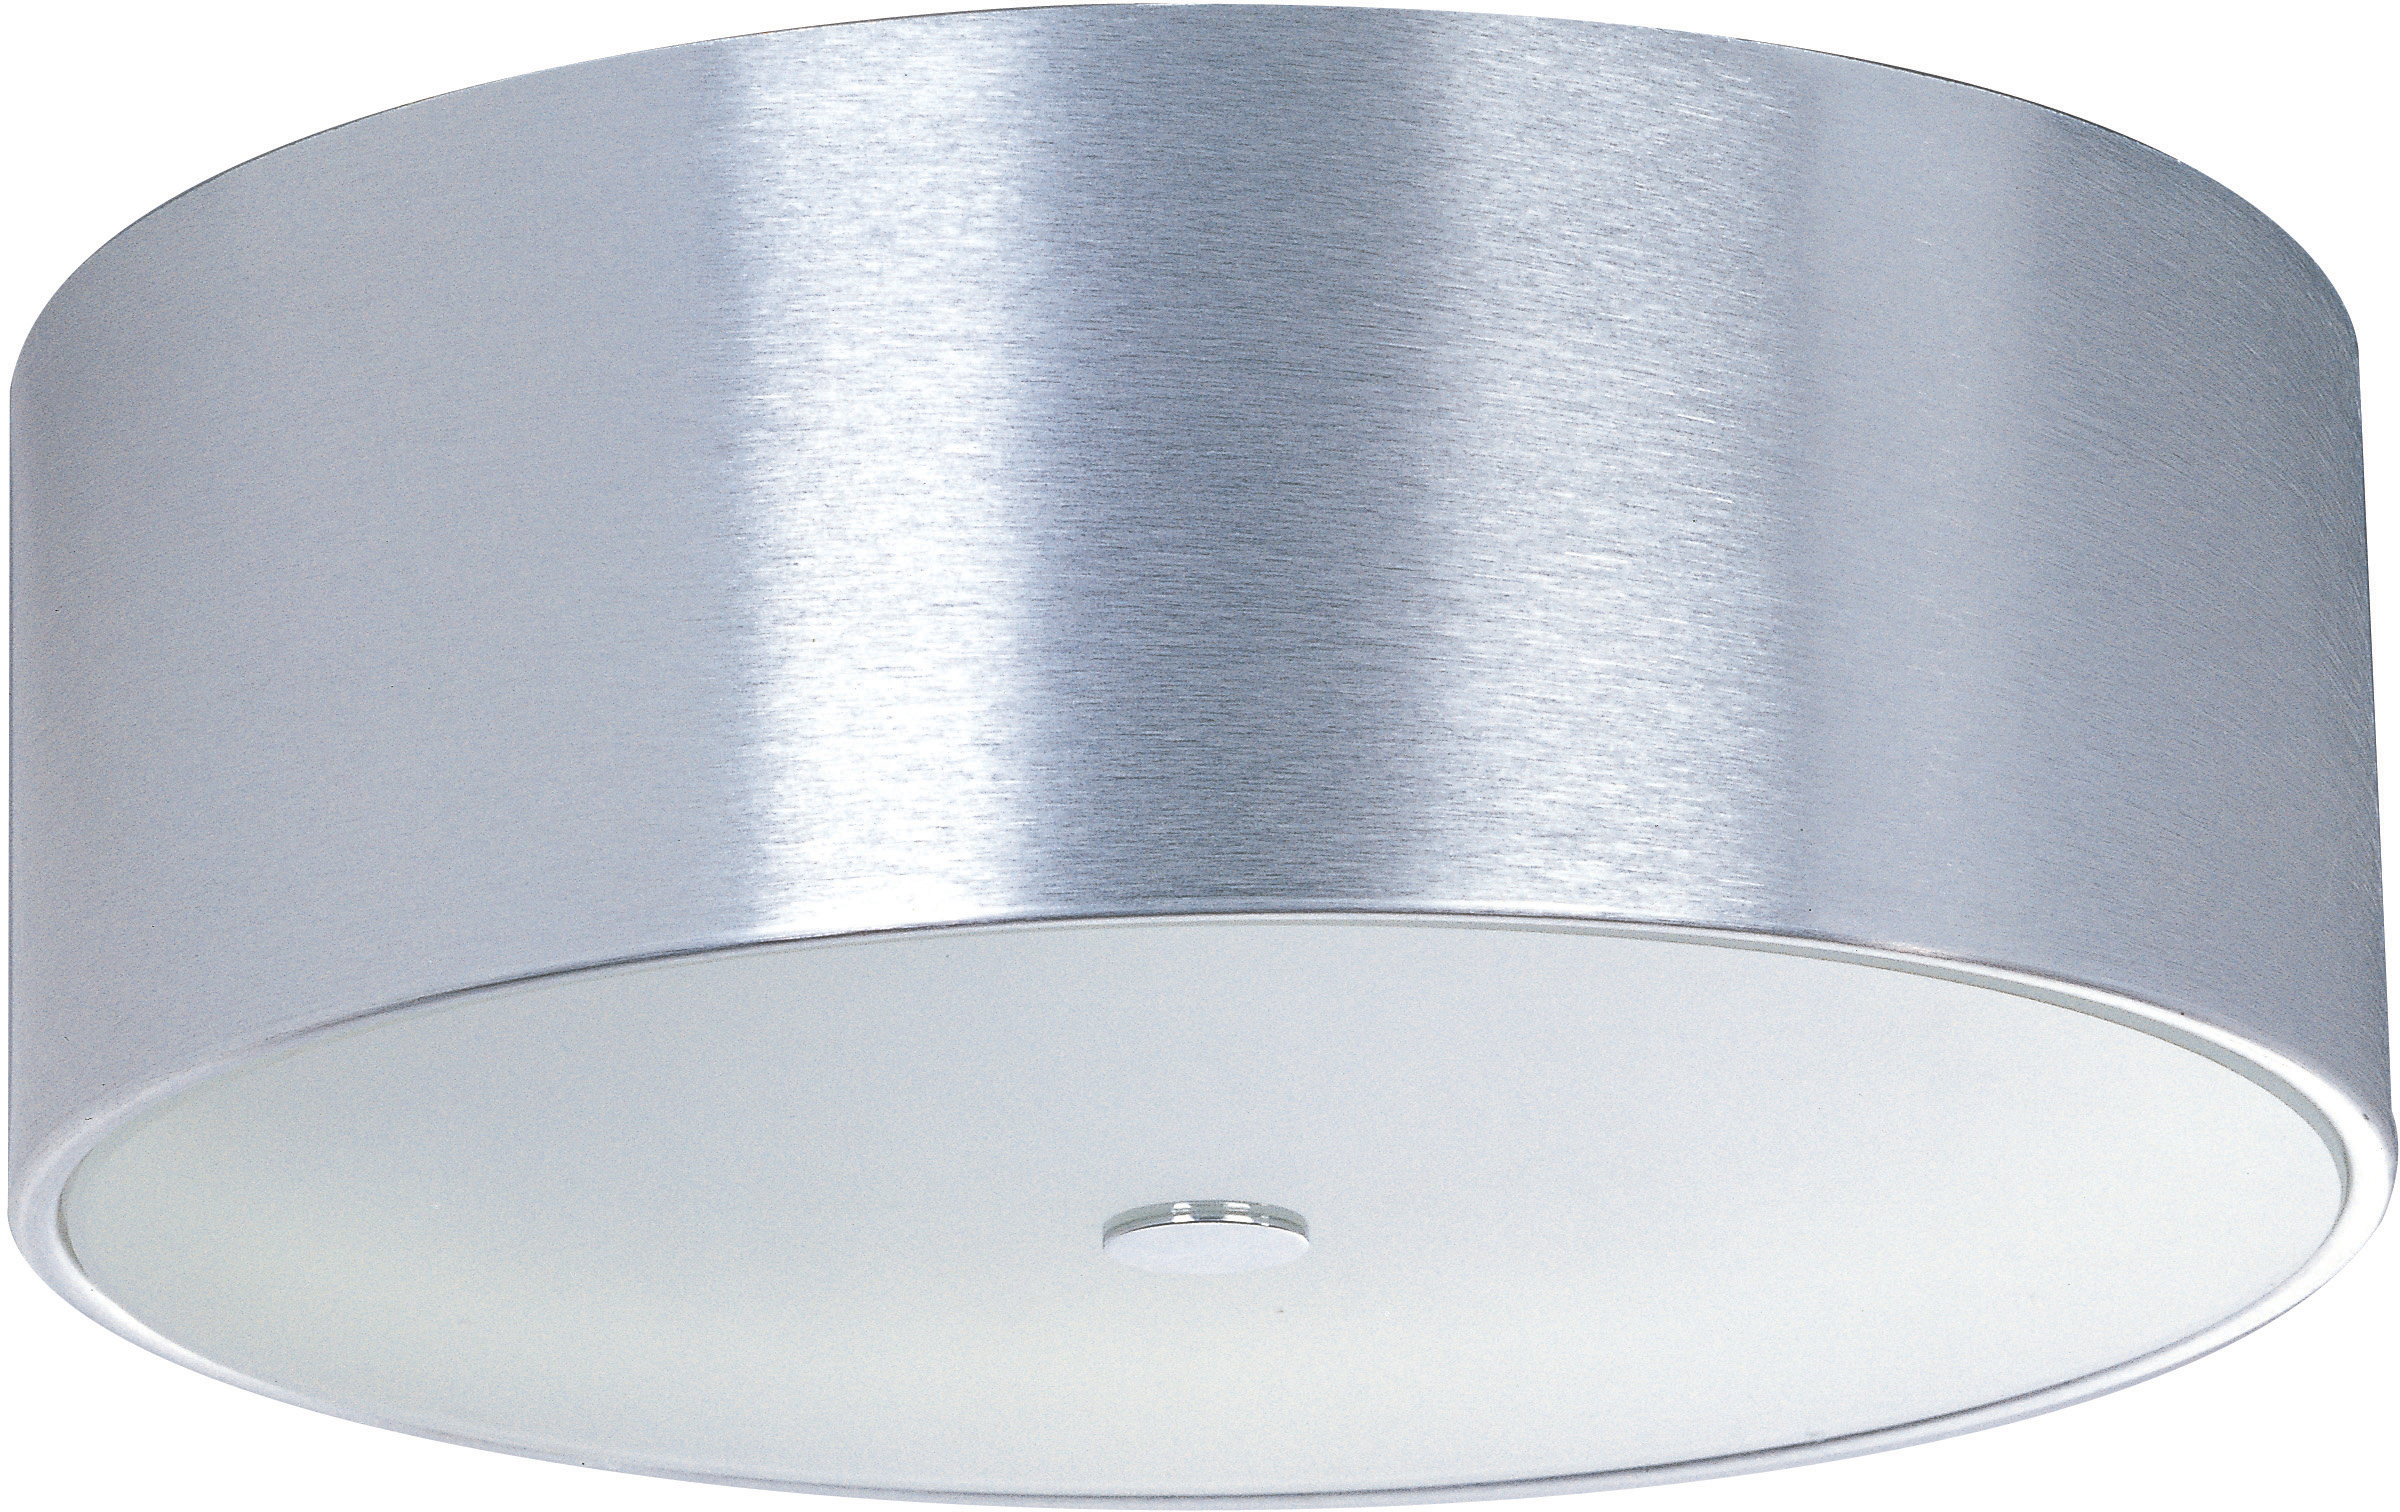 Percussion 3-Light Flush Mount - Flush Mount - Maxim Lighting